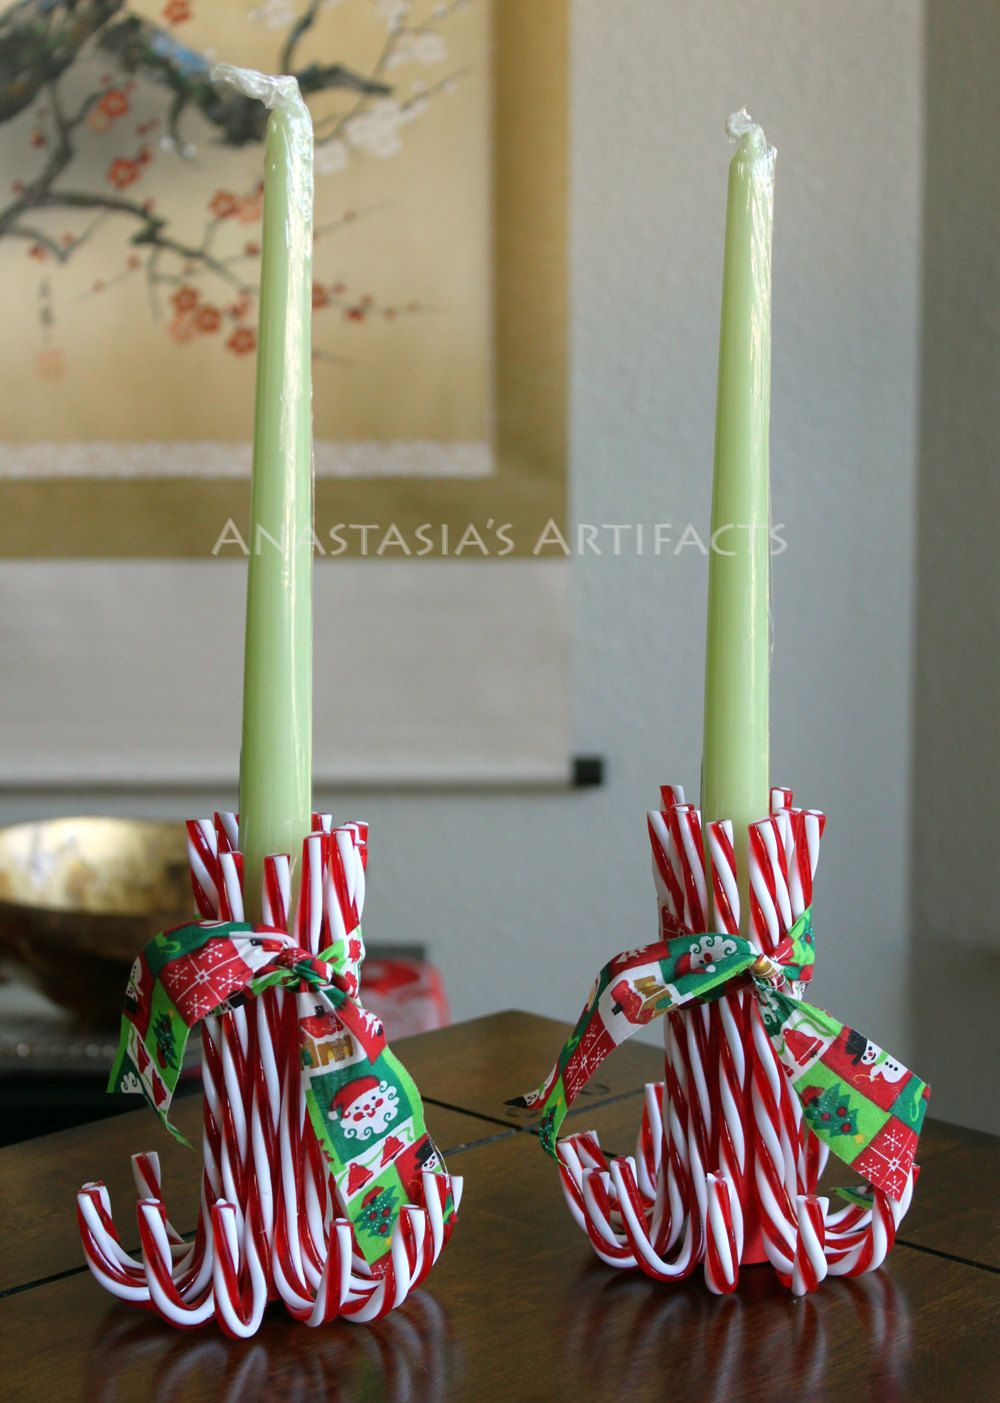 18-creative-christmas-candle-ideas-10 1,000×1,403 pixels